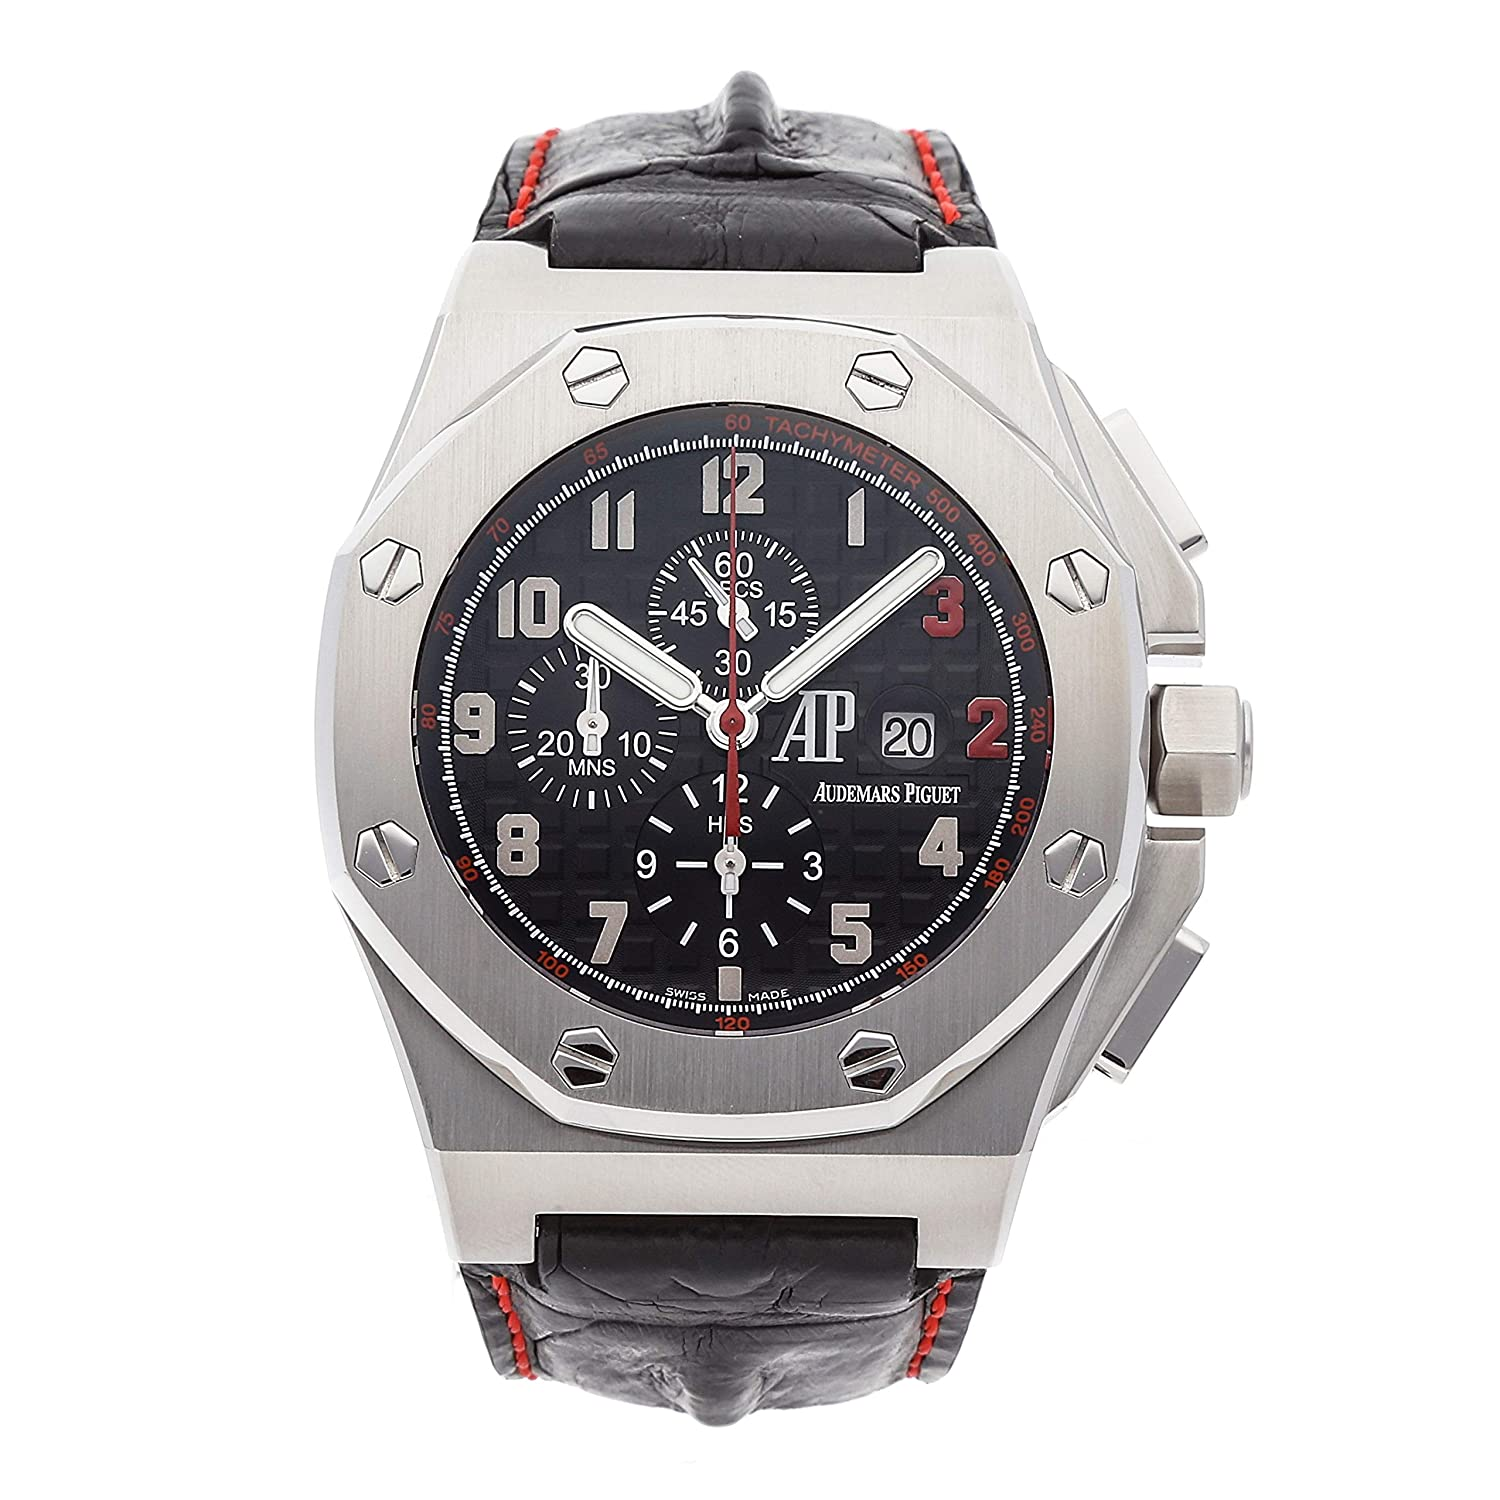 Audemars Piguet Royal Oak Offshore Mechanical (Automatic) Black Dial Mens Watch 26133ST.OO.A101CR.01 (Certified Pre-Owned)